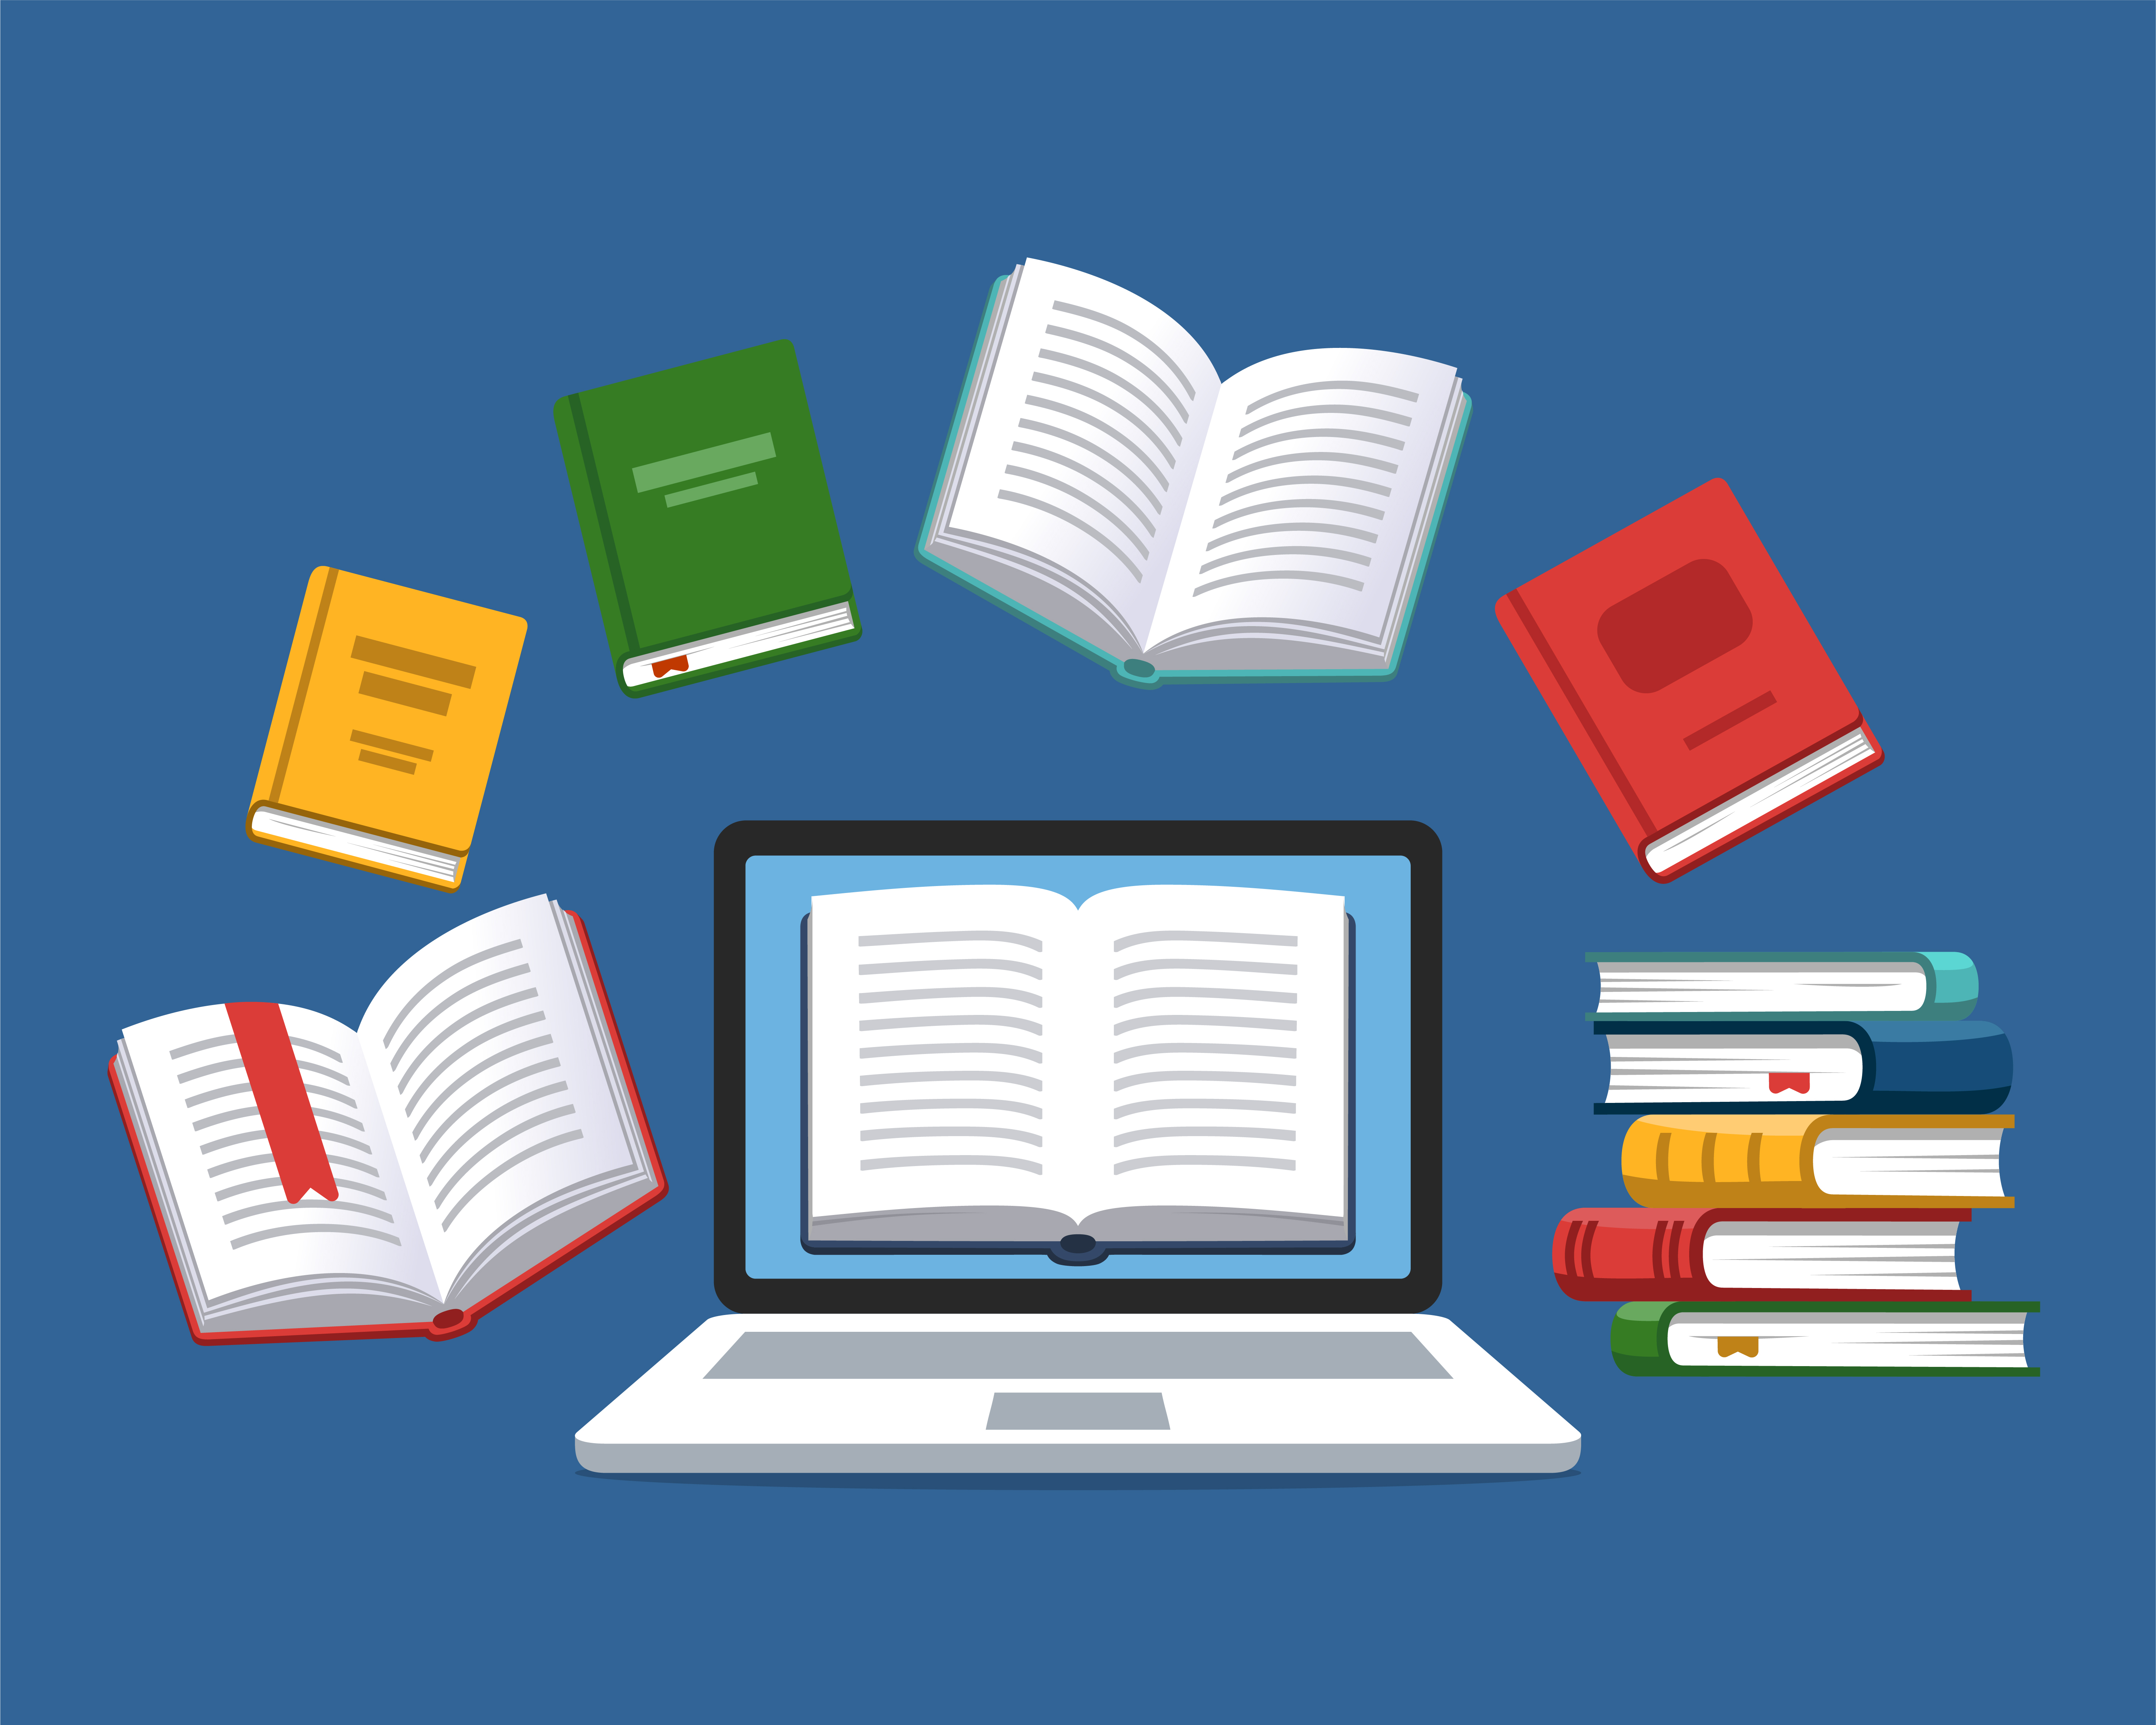 Discover eBooks at the Library